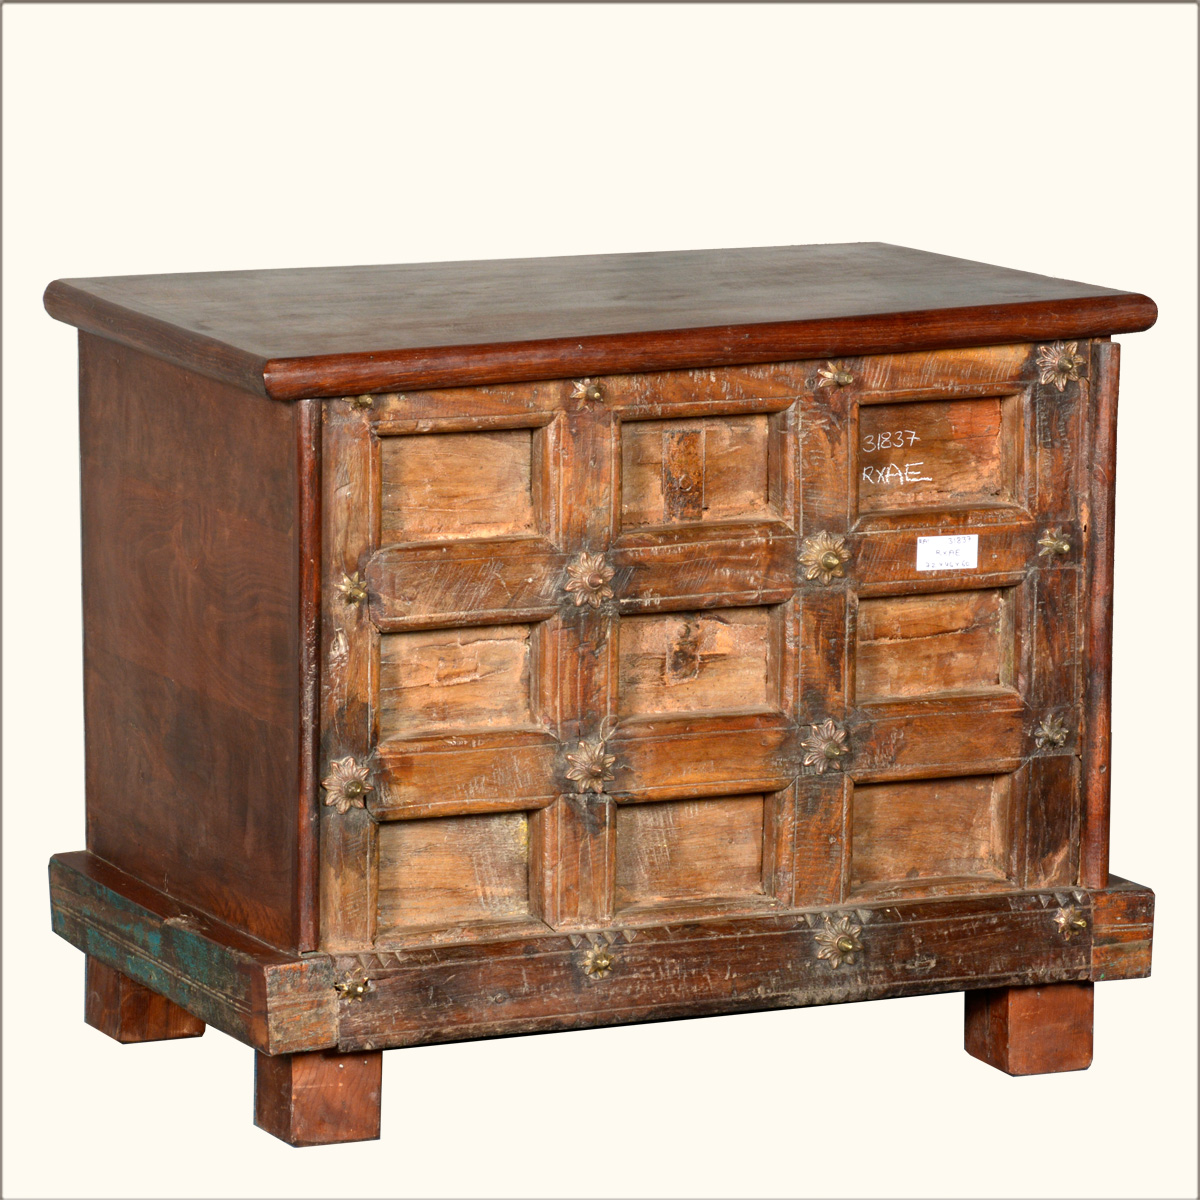 Rustic Reclaimed Wood Standing Mini Coffee Table Storage Chest Trunk